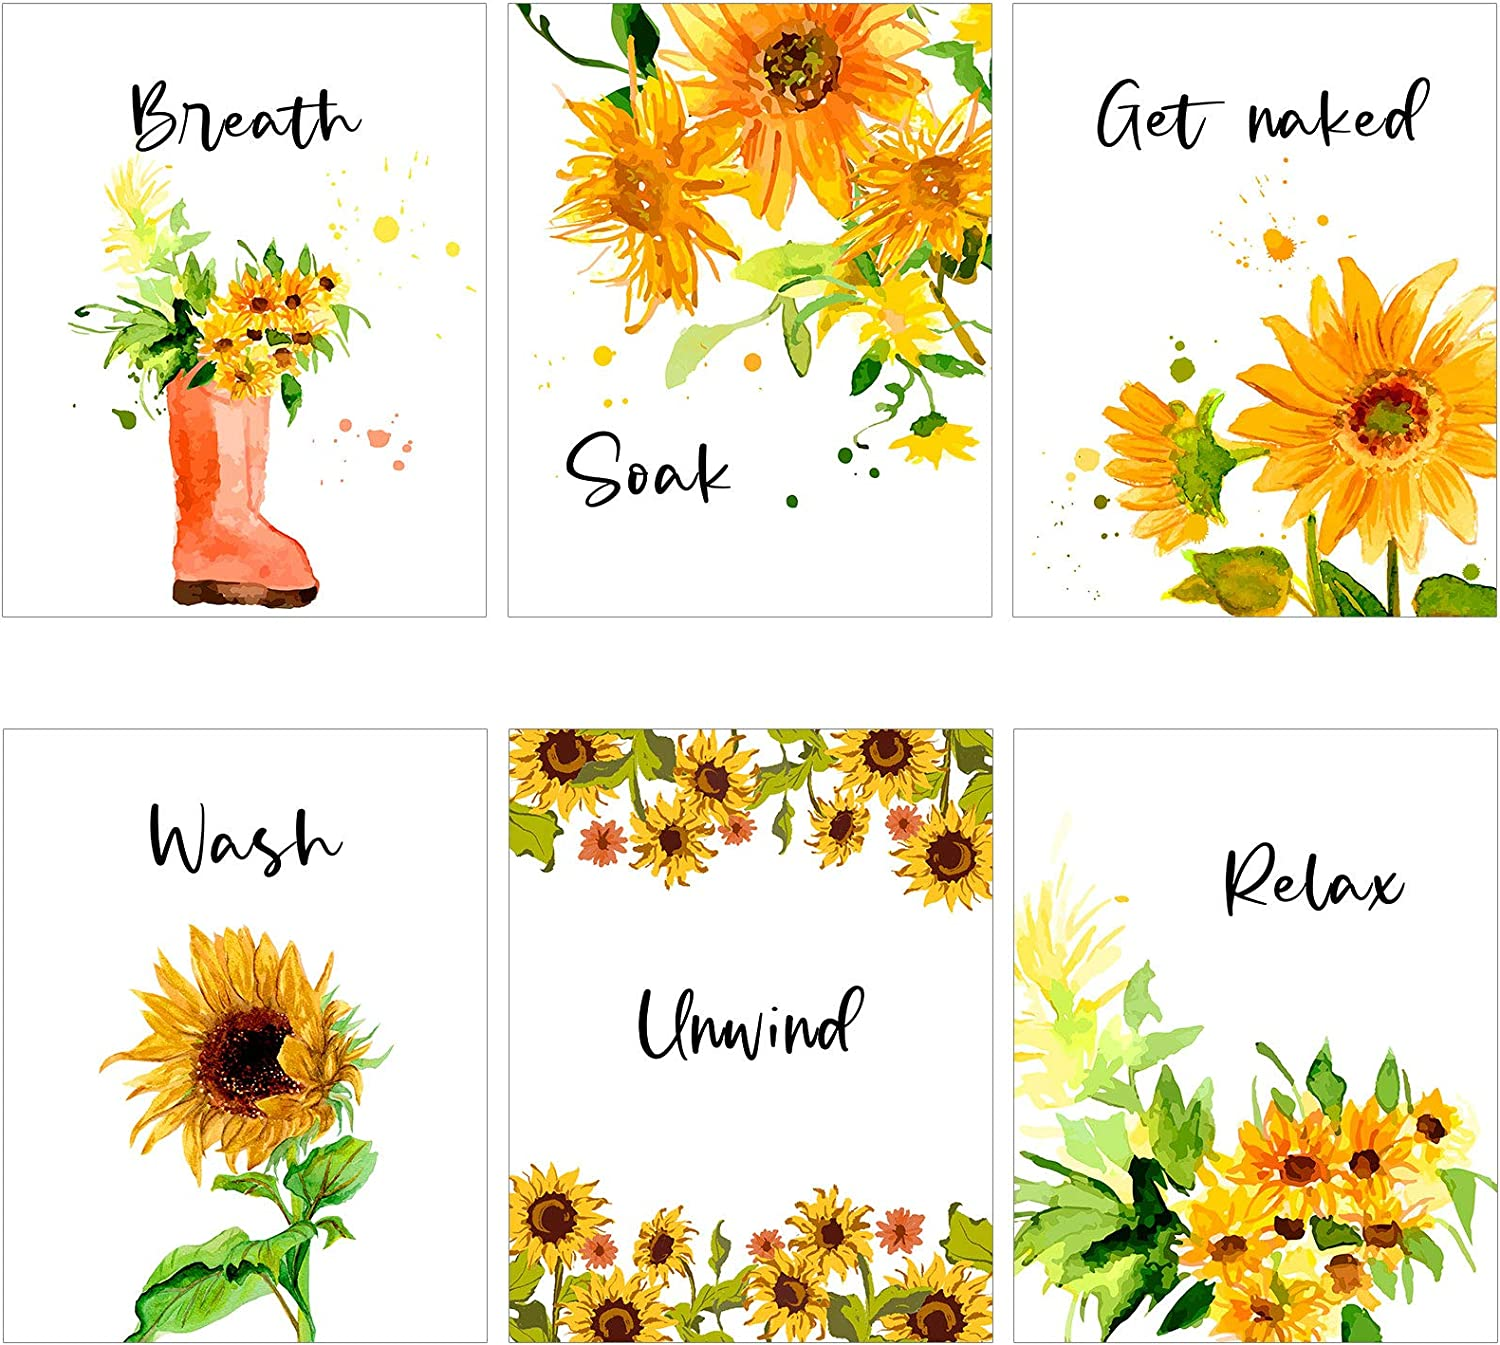 6 Pieces Vinyl Sunflower Wall Decor Sunflower Wall Art Posters Relax Soak Unwind Breathe Wash Get Naked Sunflower Painting Sticker Print For Bathroom Living Room Signs (8 x 10 Inch)